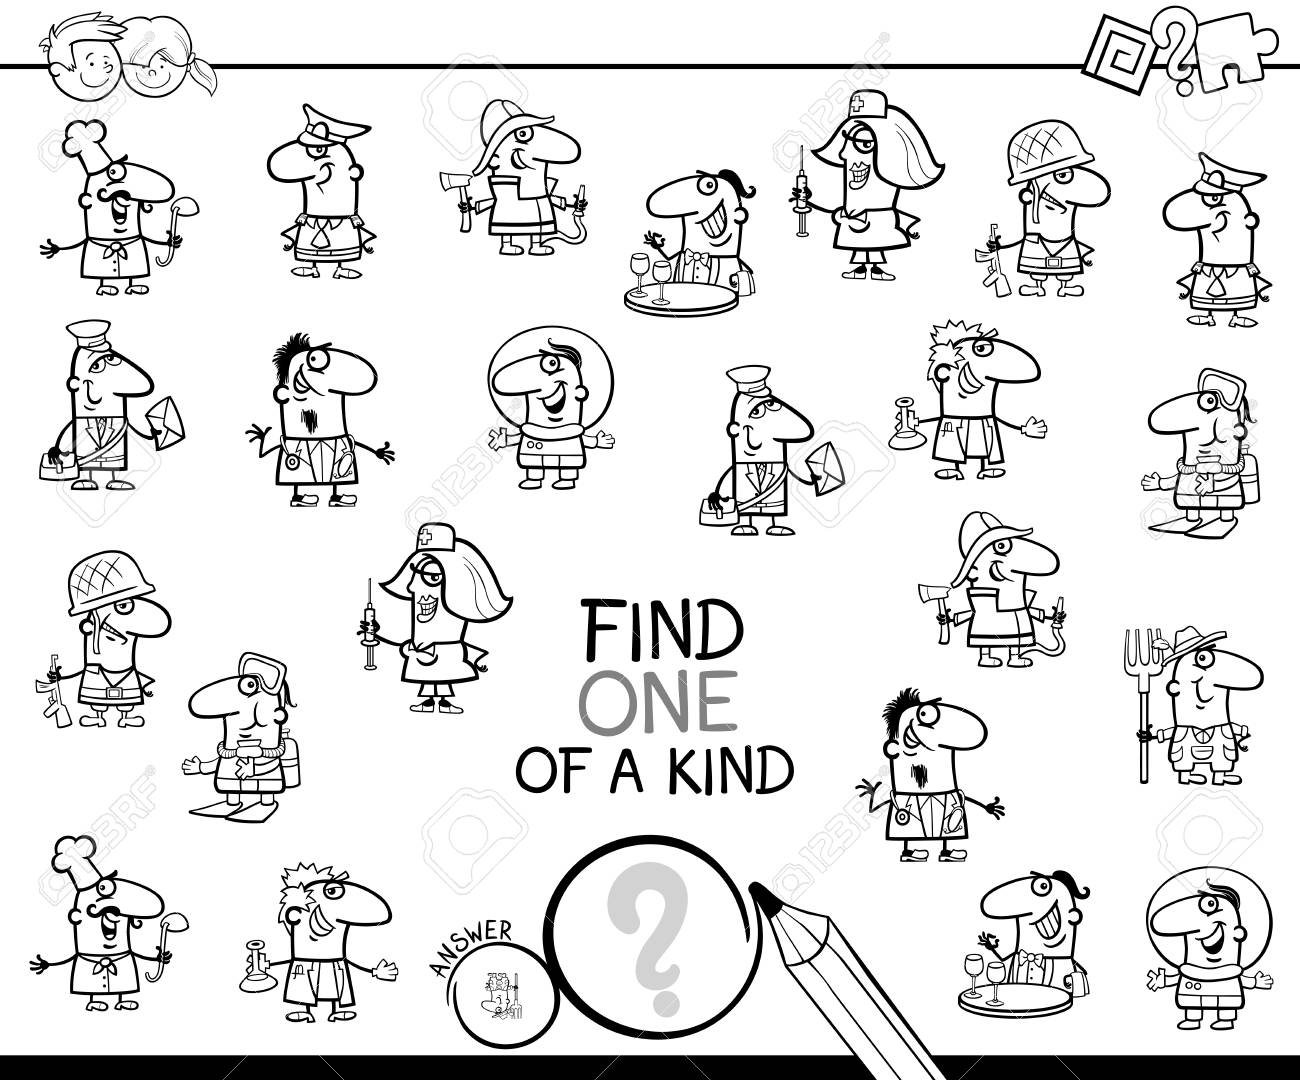 Black And White Cartoon Illustration Of Find One Of A Kind Picture